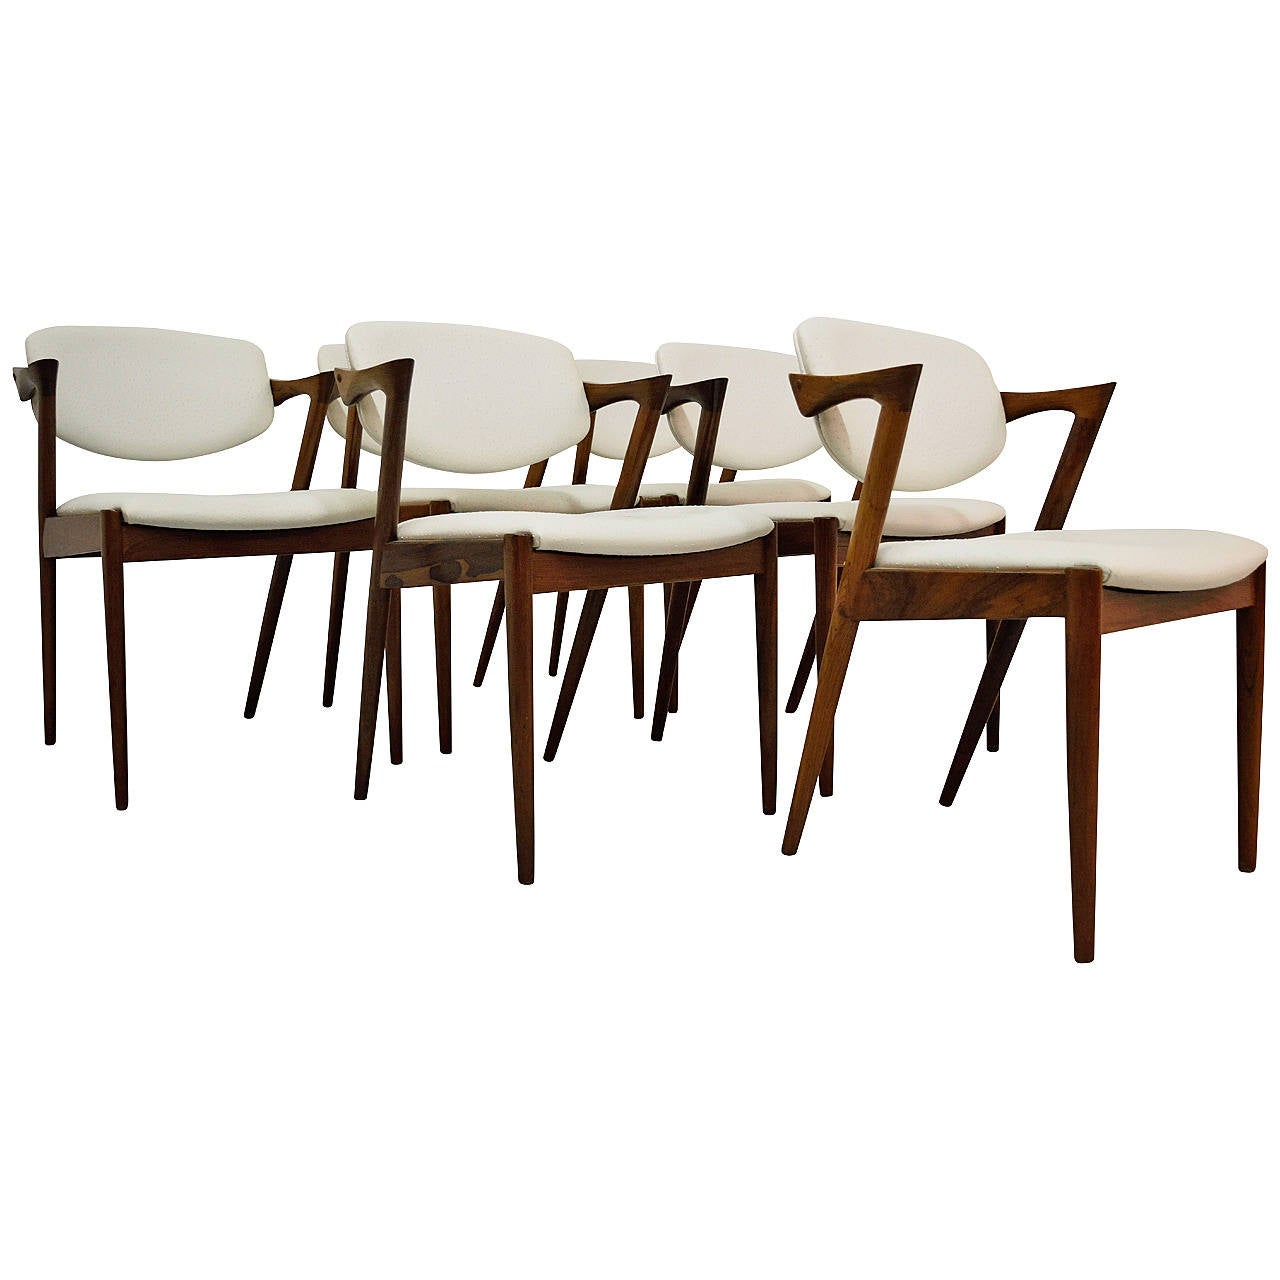 Six kai kristiansen rosewood dining chairs at 1stdibs - Rosewood dining room furniture ...